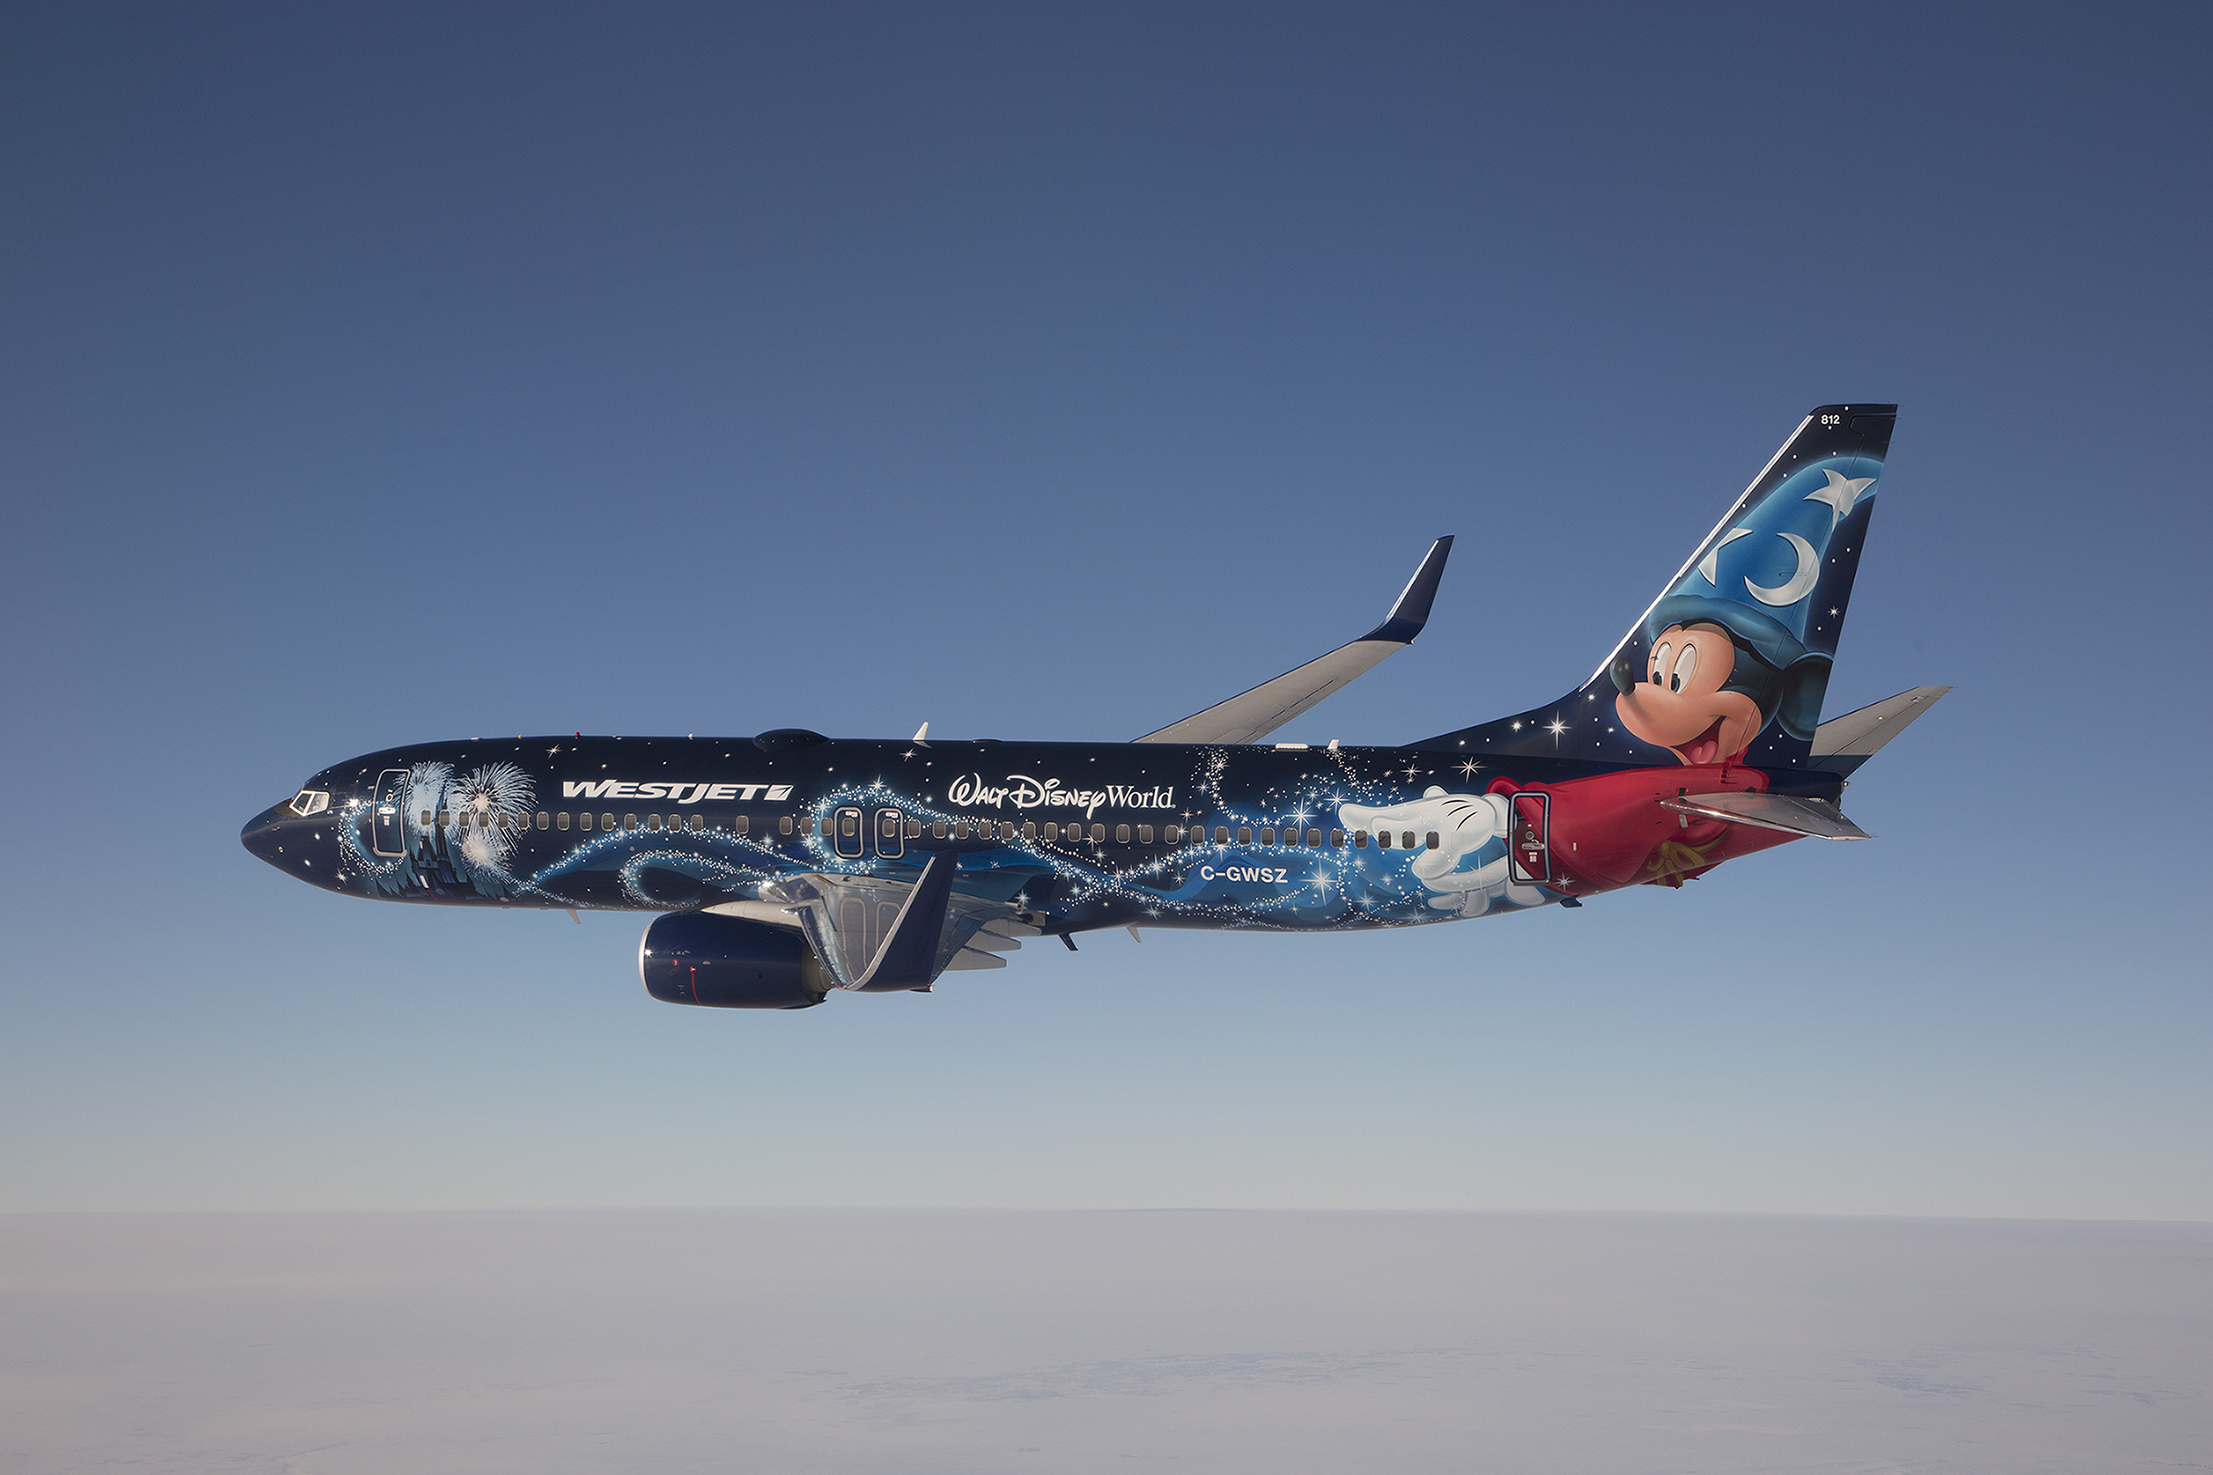 WestJet Disney Magic Plane